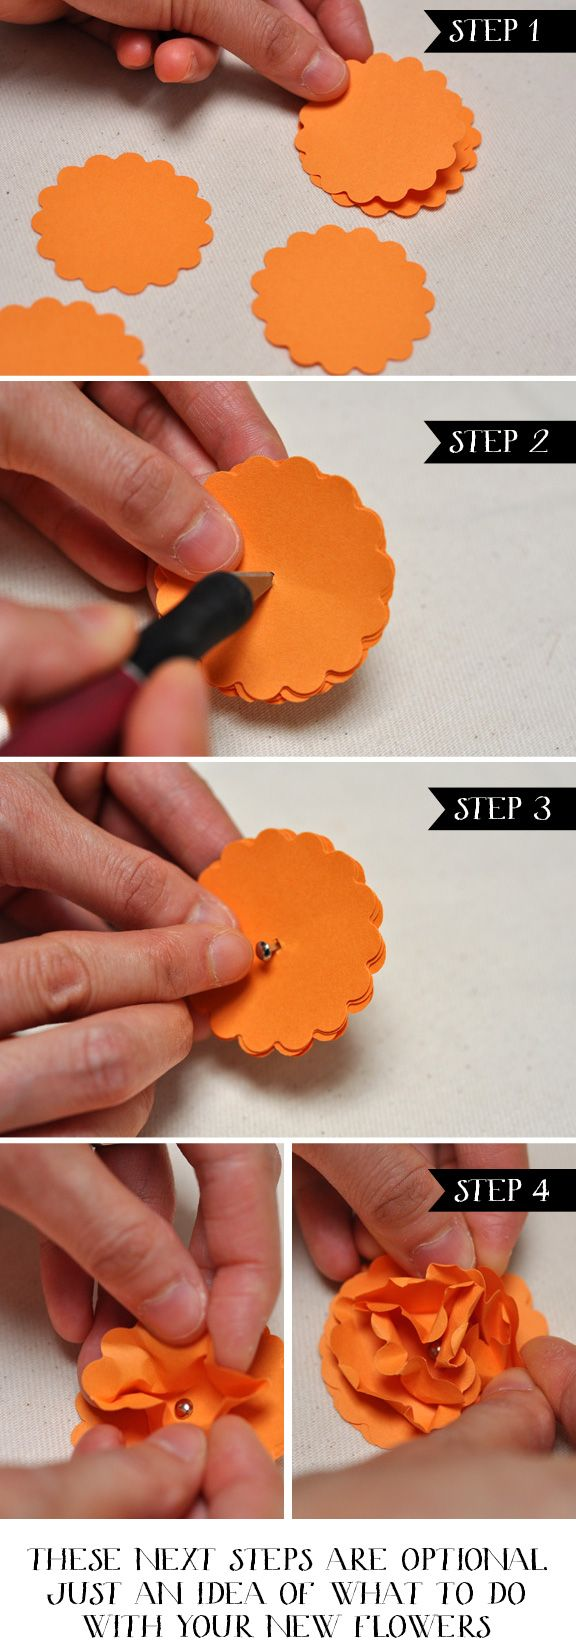 Easy diy paper flowers scrapbook pinterest diy paper tissue we can use tissue paper instead if thats easier also just follow steps 1 thru 4 well just use the flowers themselves instead of putting them on sticks mightylinksfo